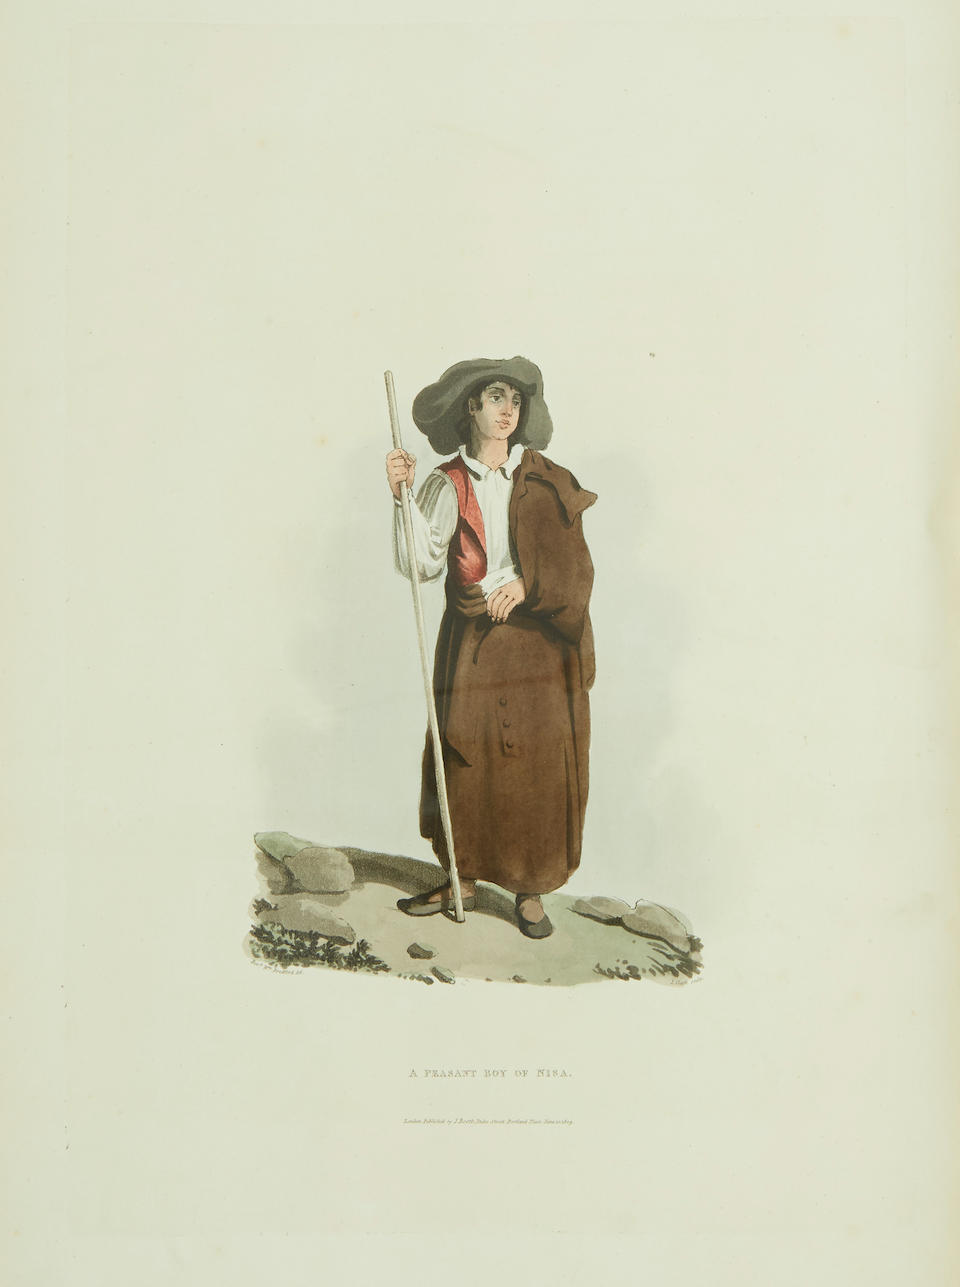 BRADFORD, WILLIAM. 1779-1857. Sketches of the Country, Character, and Costume, in Portugal and Spain, Made during the Campaign, and on the Route of the British Army, in 1808 and 1809. London: John Booth, 1809-1810.